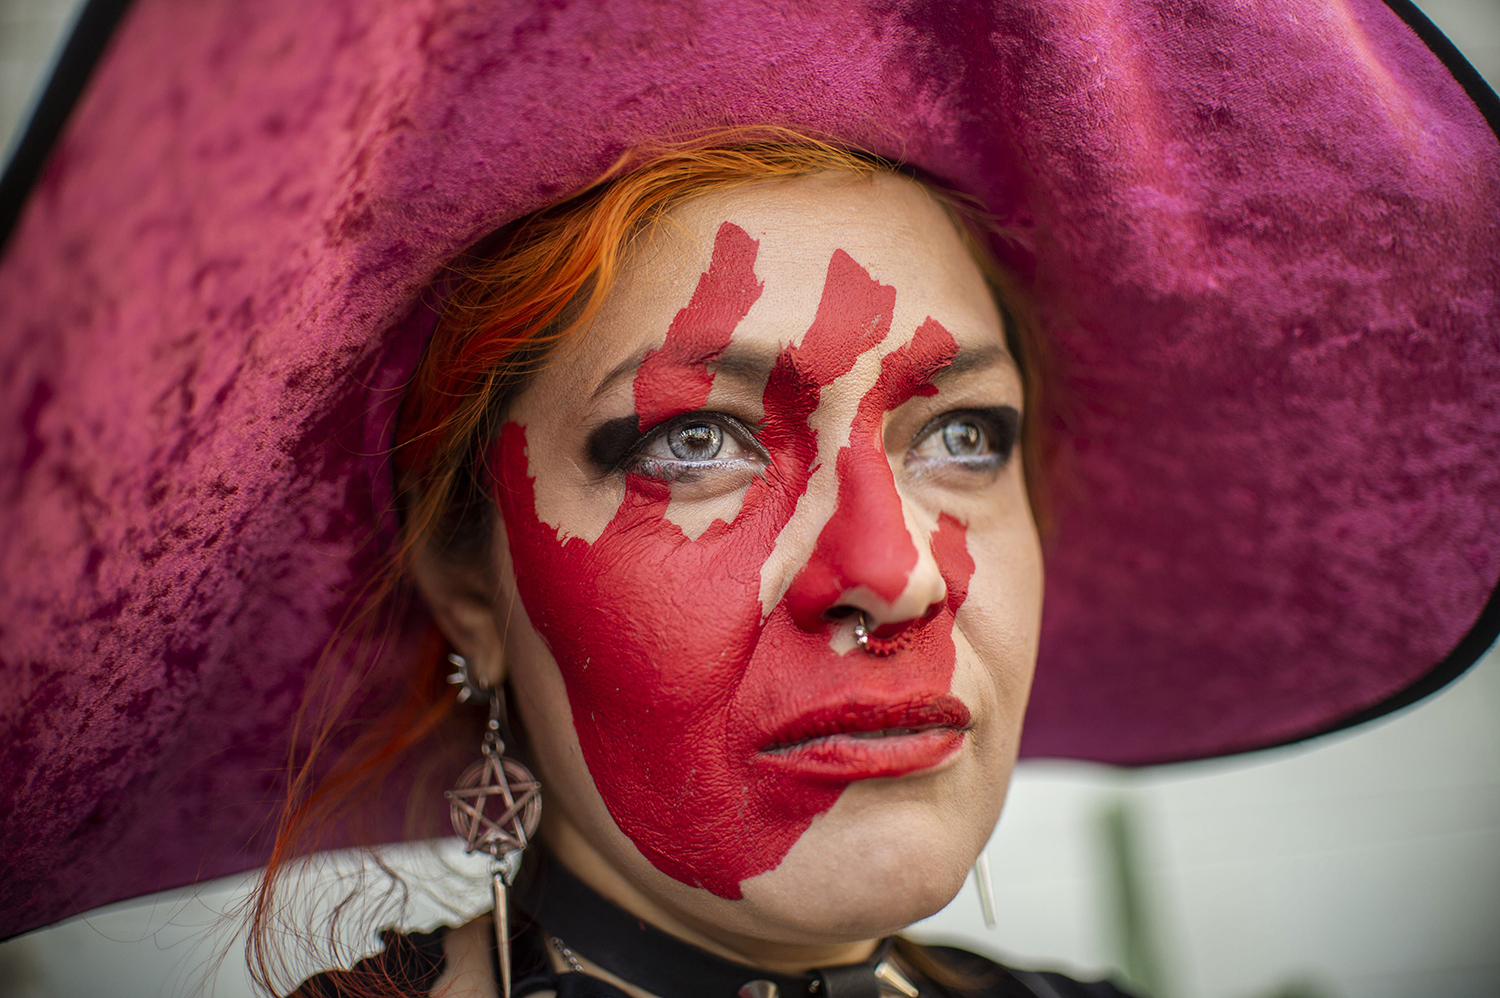 MEXICO | A woman takes part in a protest against gender violence and femicides in Mexico City on Feb. 2. Pedro Pardo/AFP/Getty Images